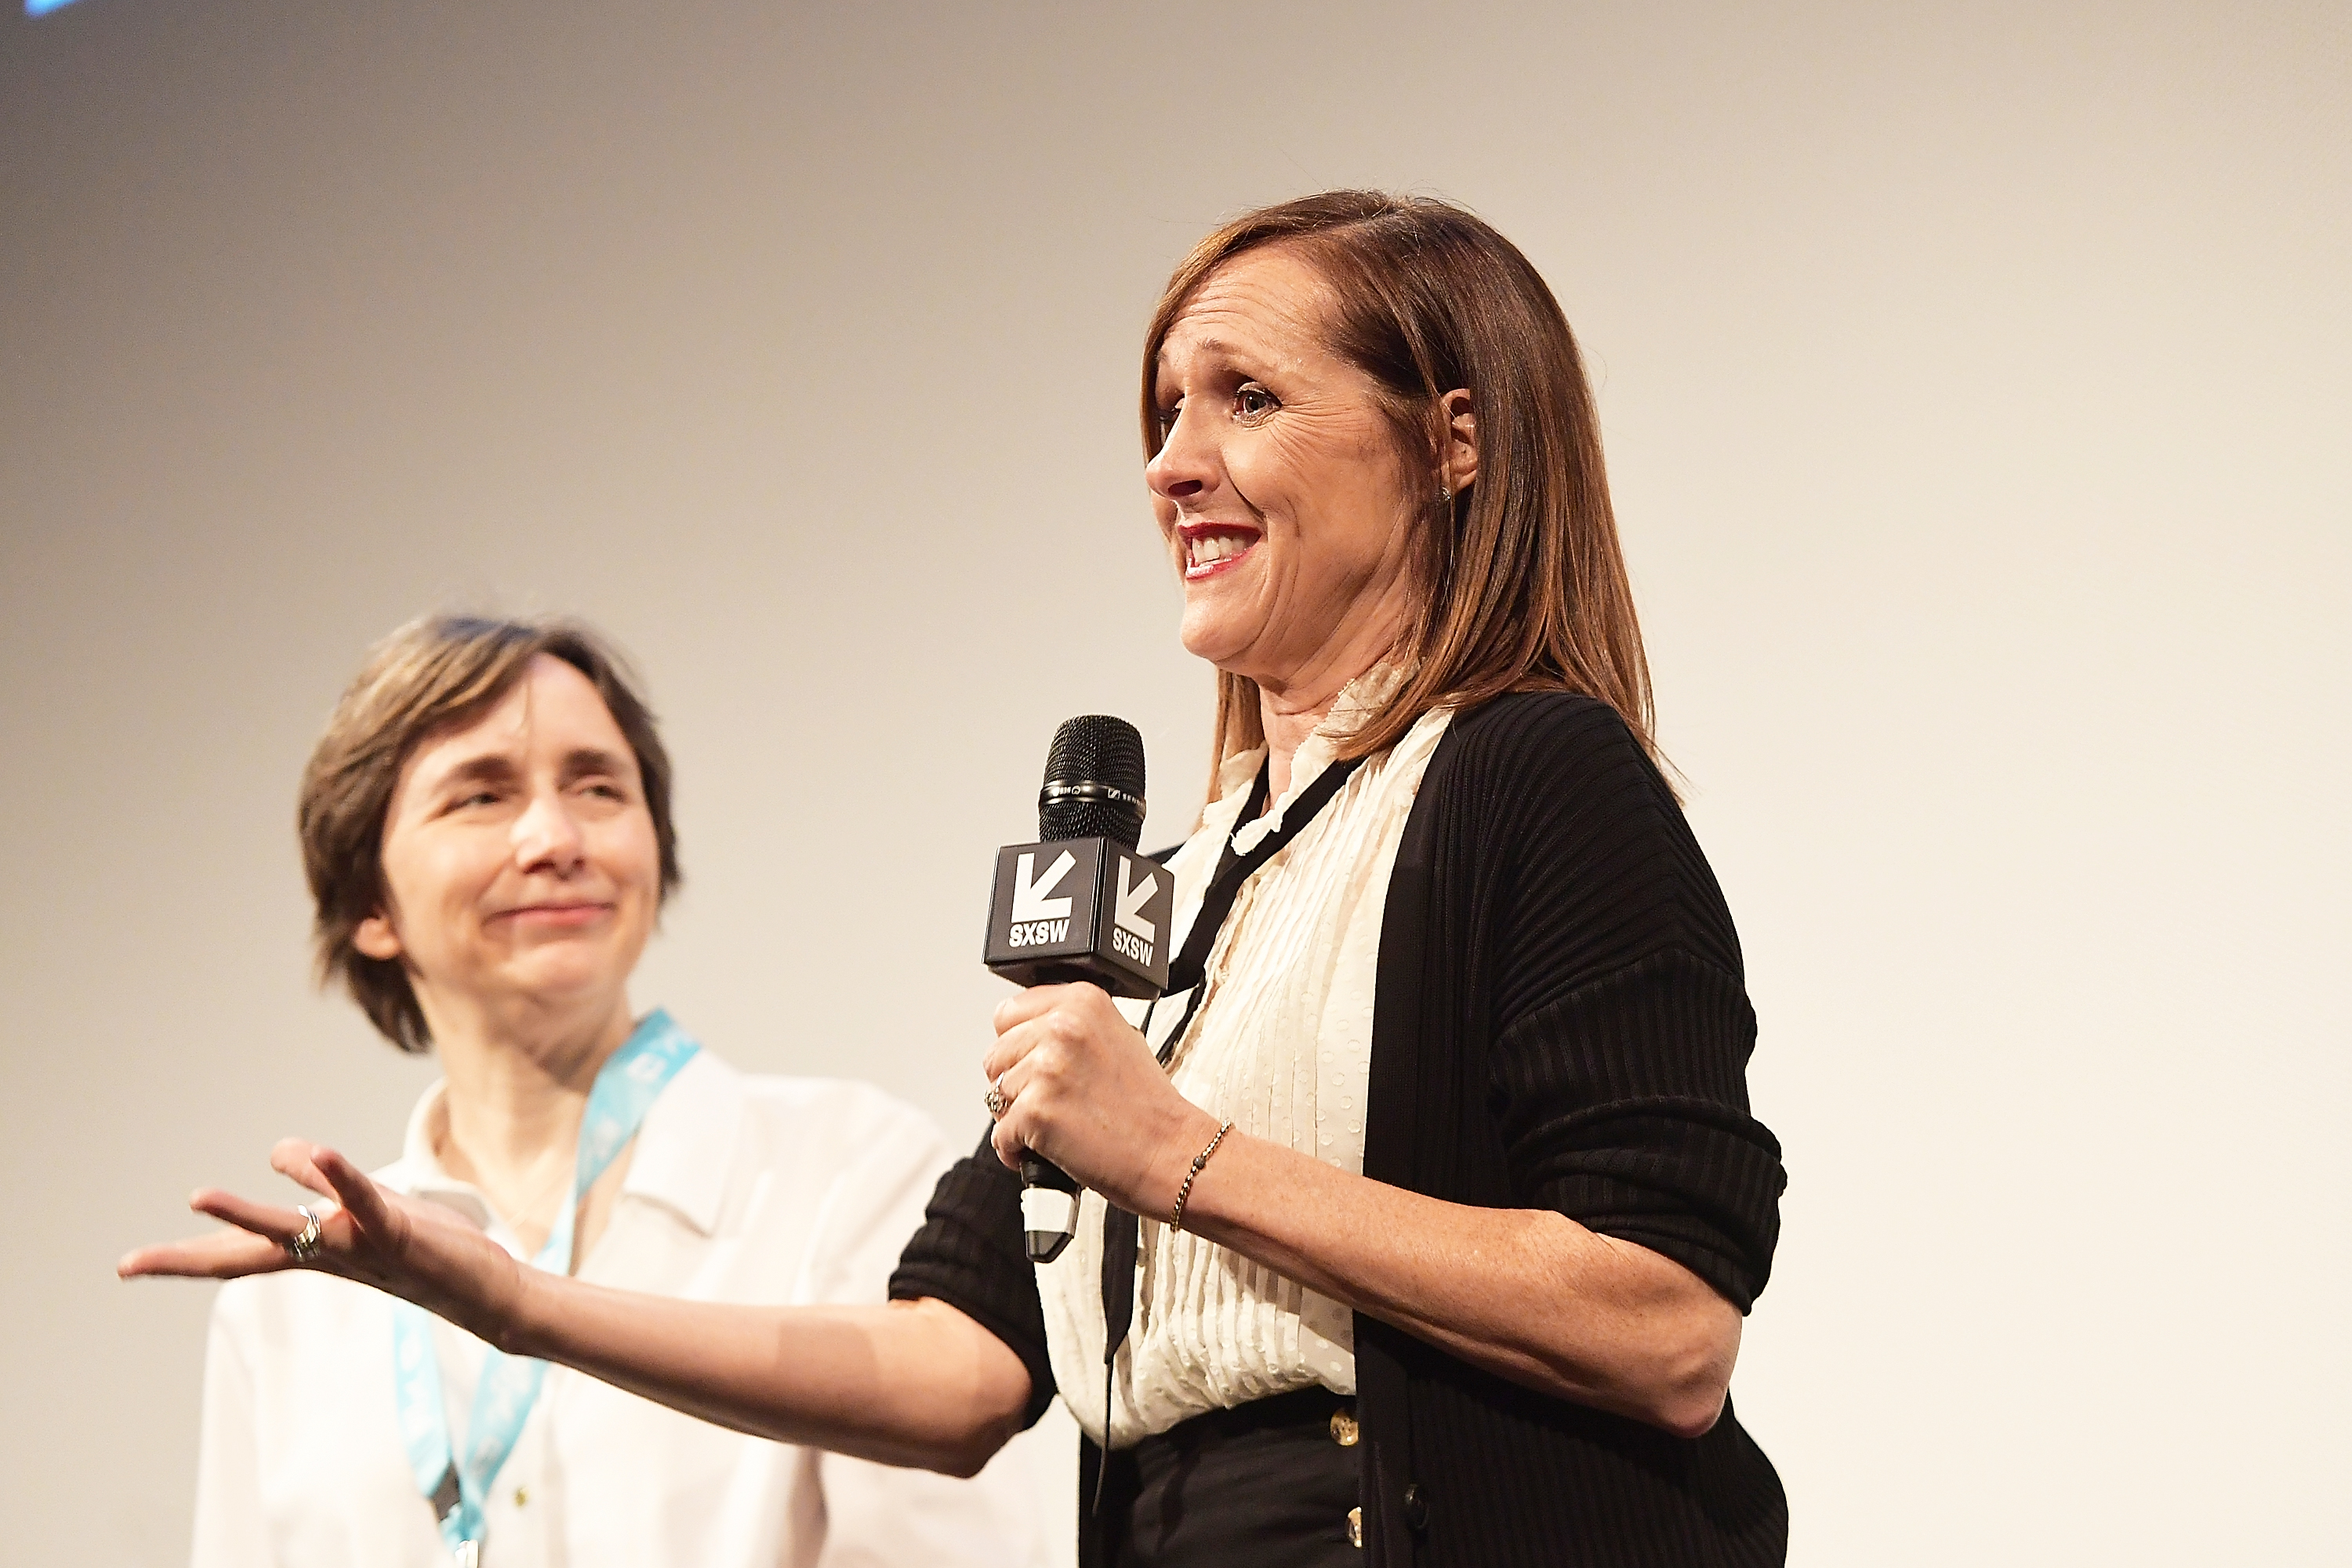 Molly Shannon's Emily Dickinson a 'lesbian feminist hero' not lonely hermit